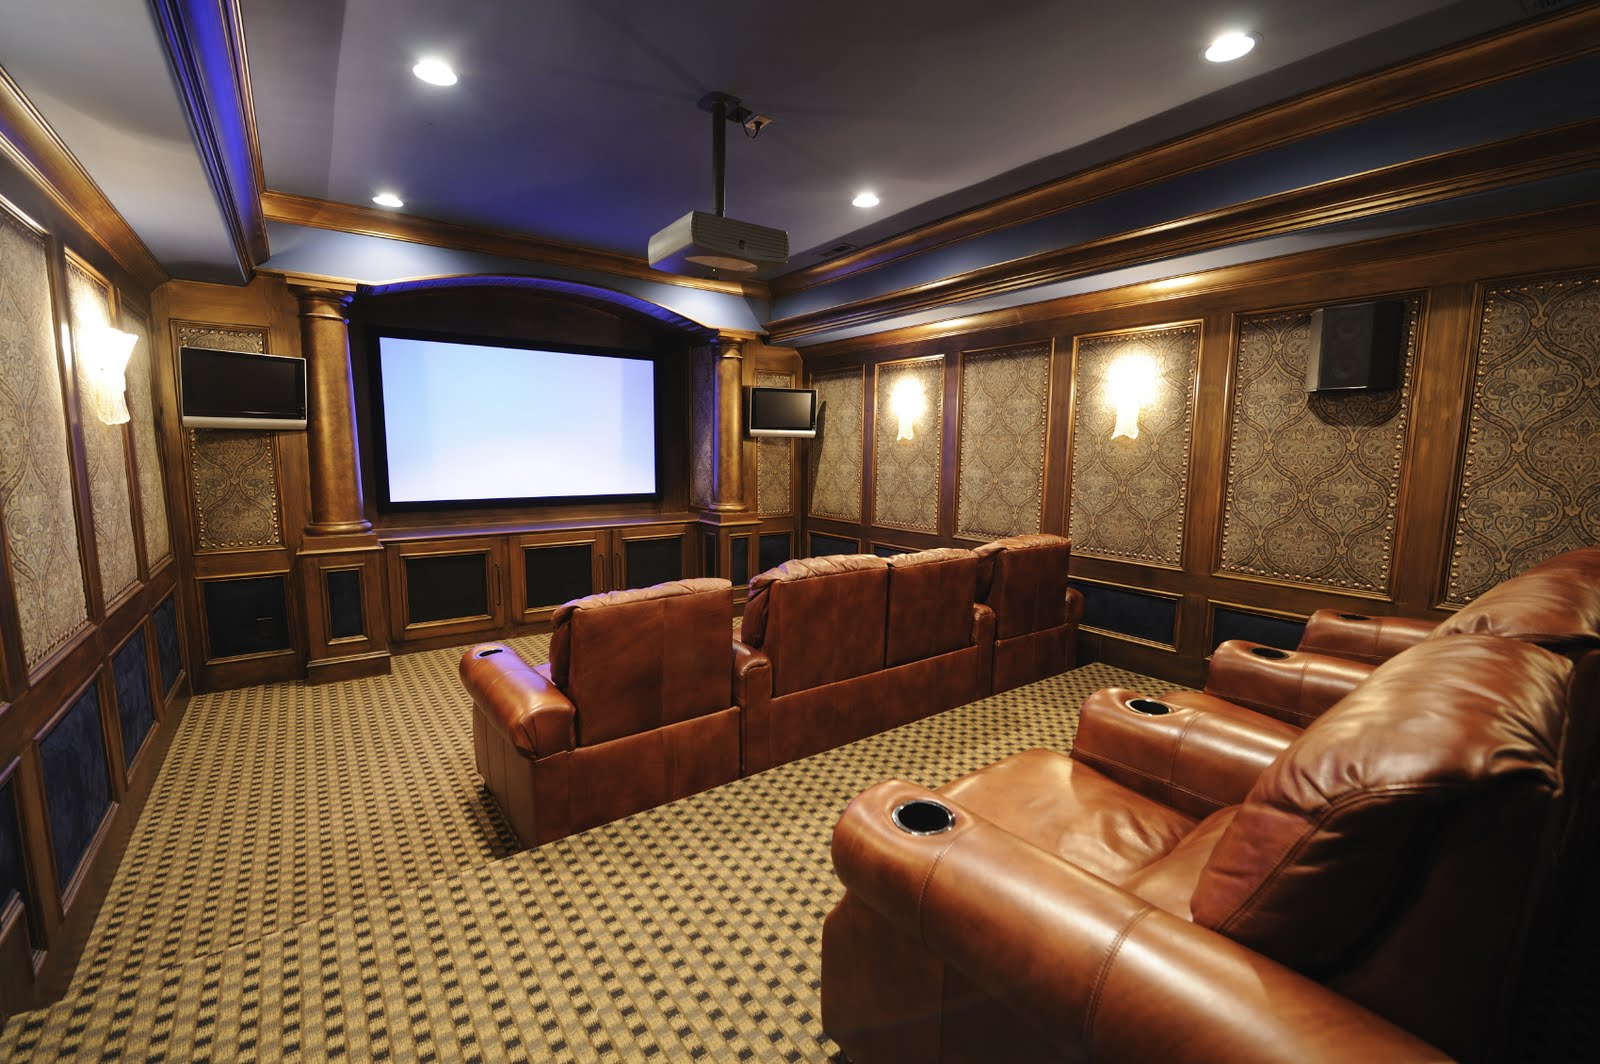 Home Theater Integrators: Media rooms, game rooms, personal theaters